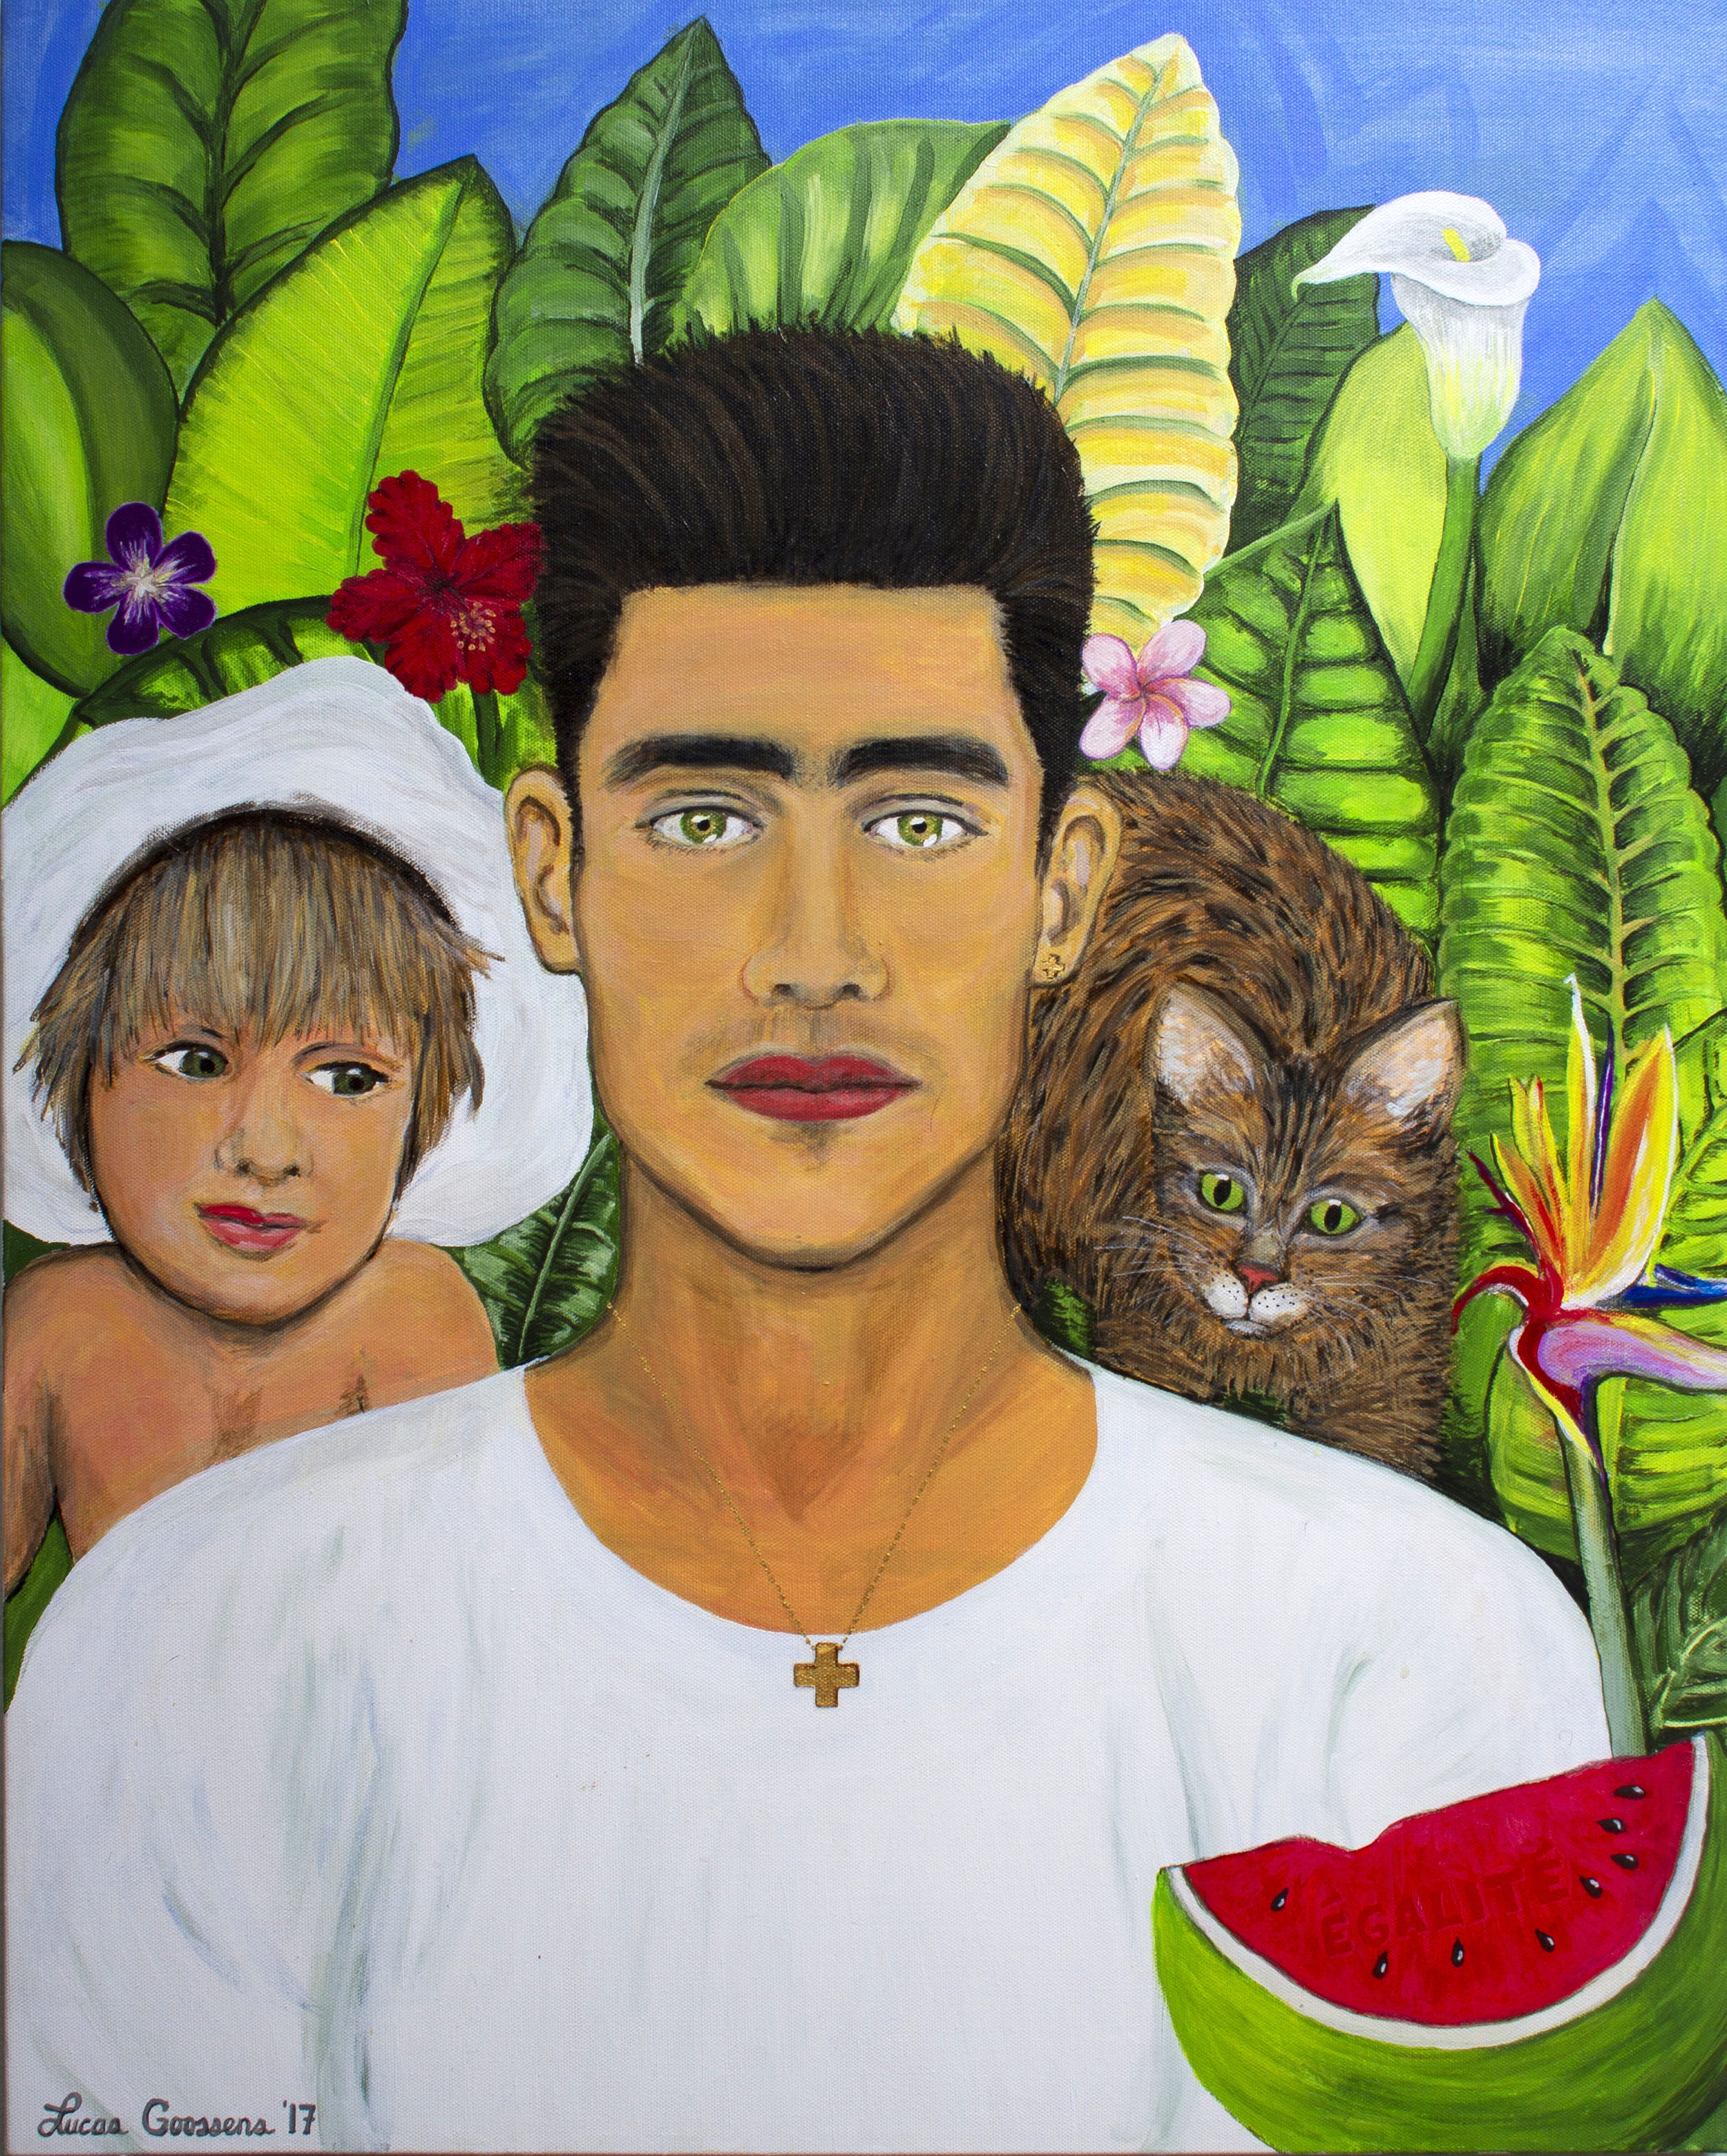 Self Portrait, Frida Kahlo Style